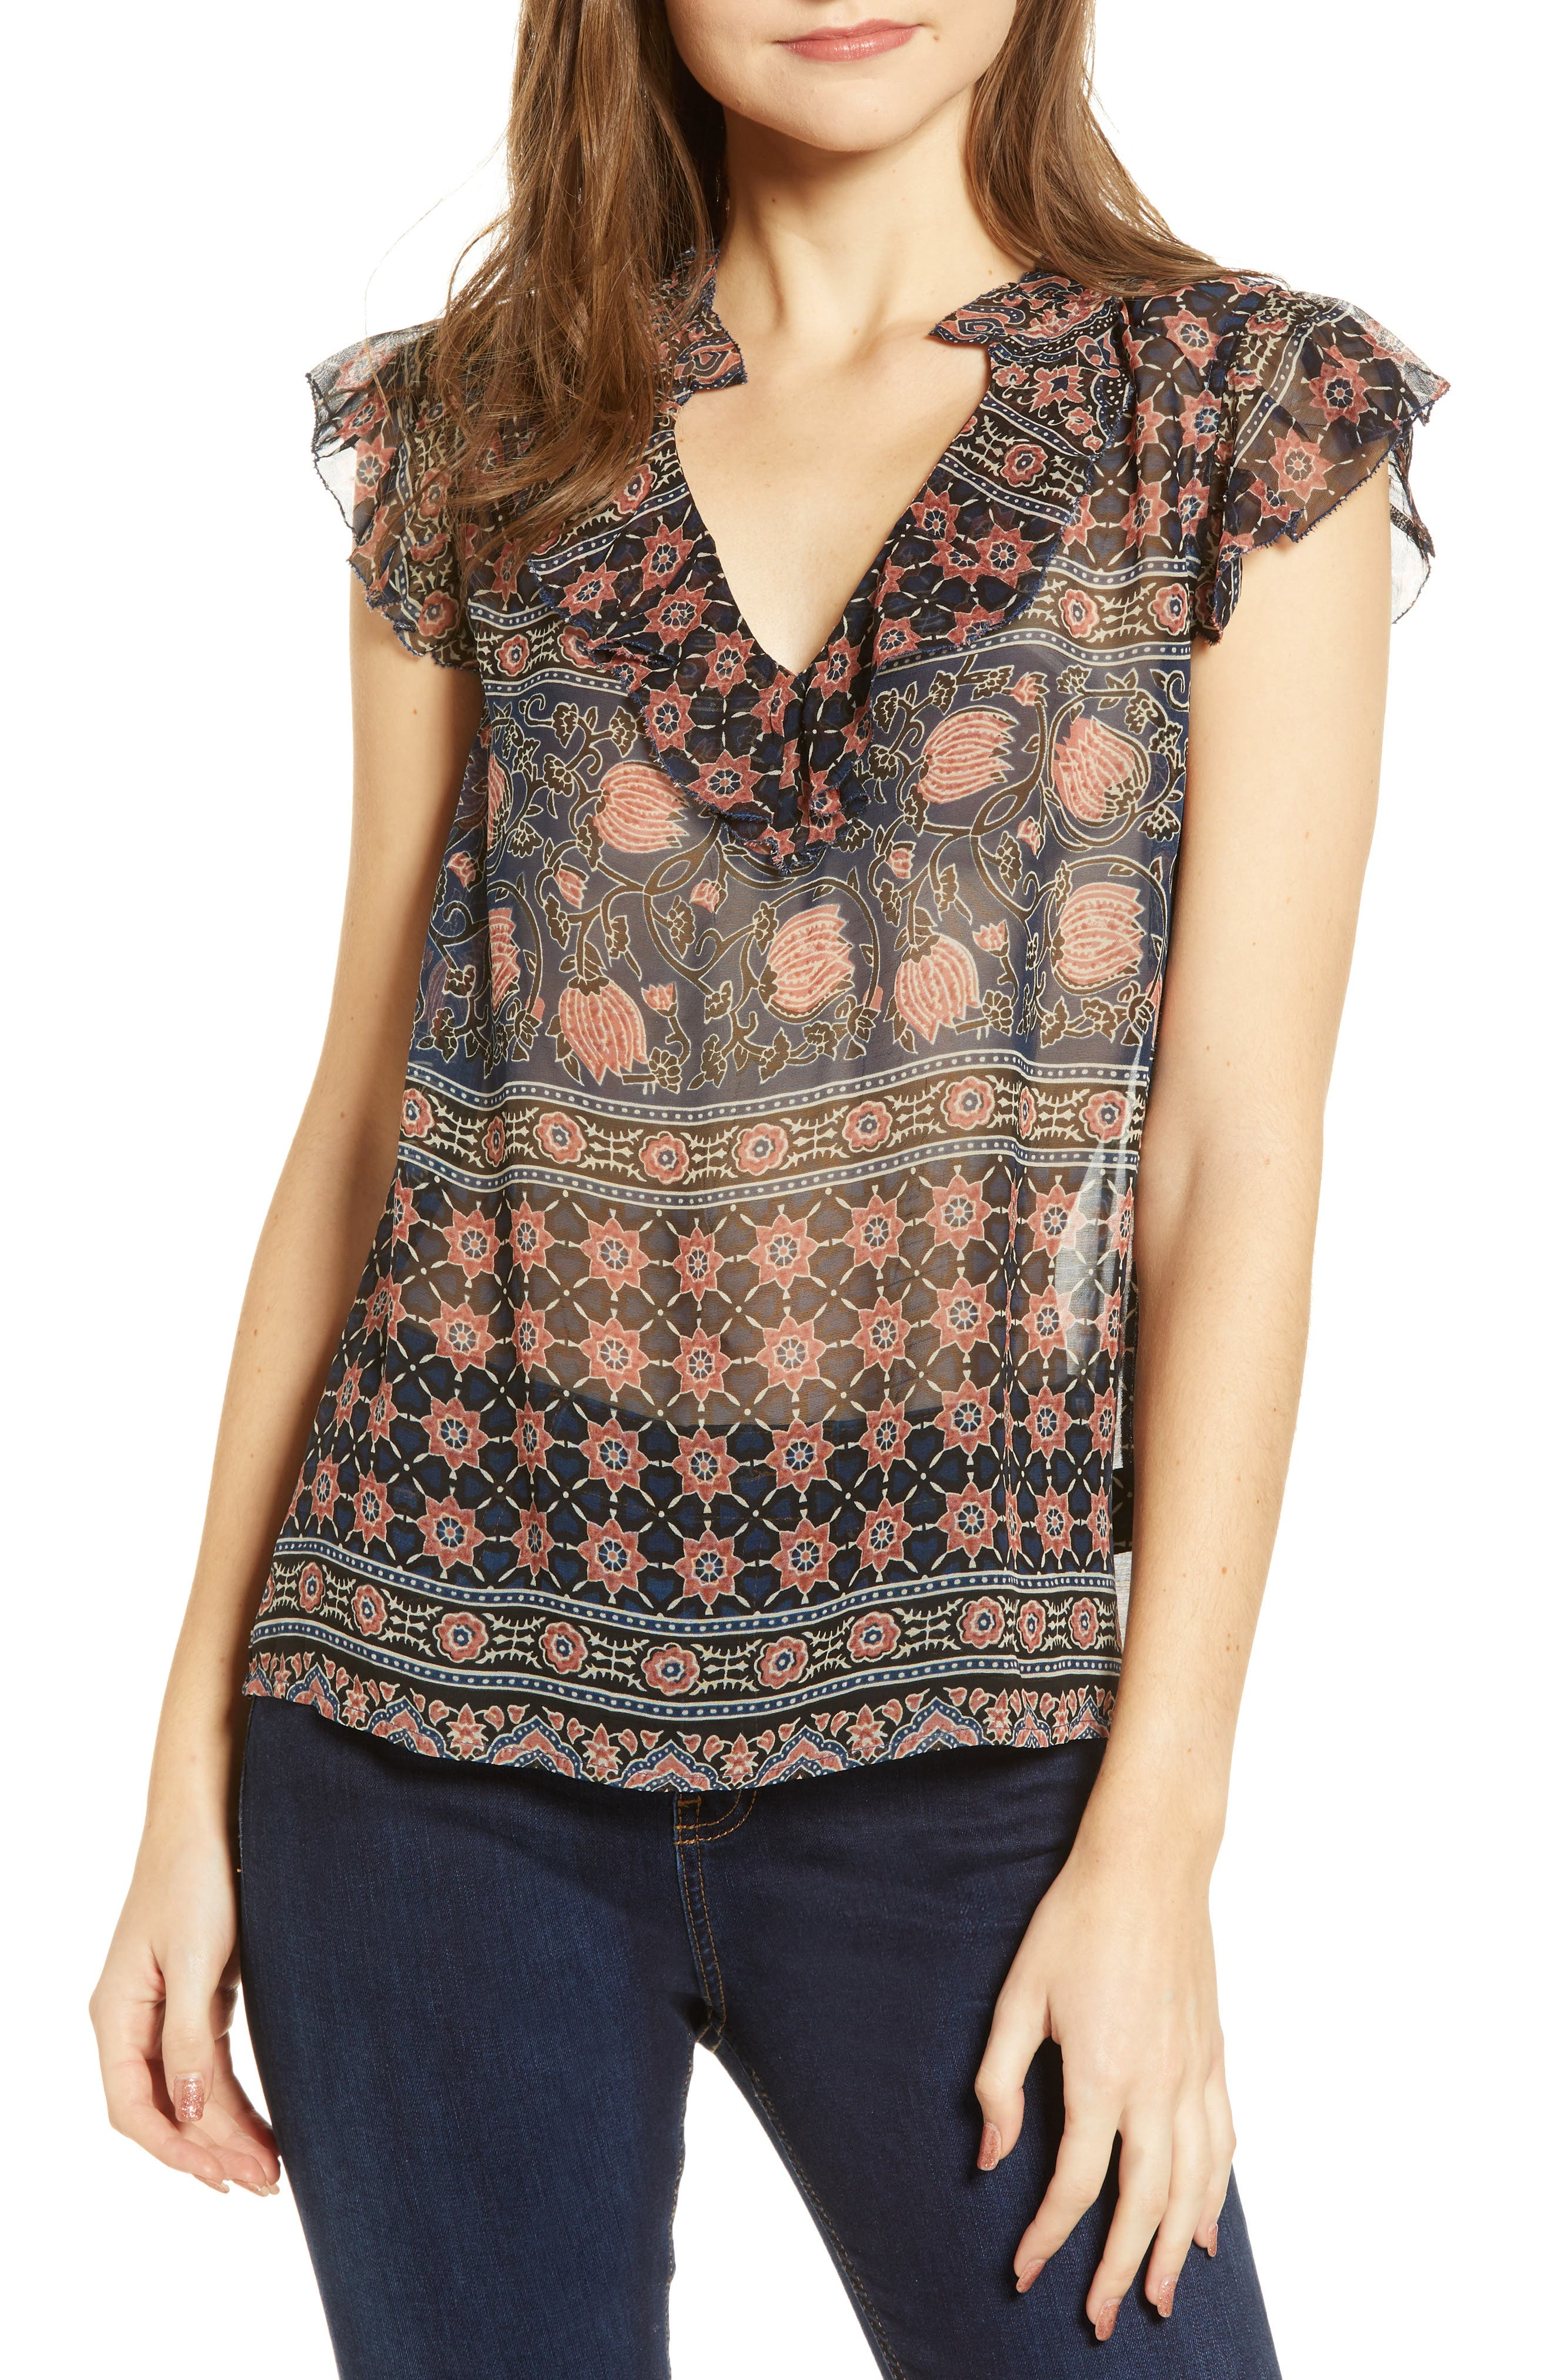 Velvet By Graham & Spencer Tops MONACO PRINT TOP